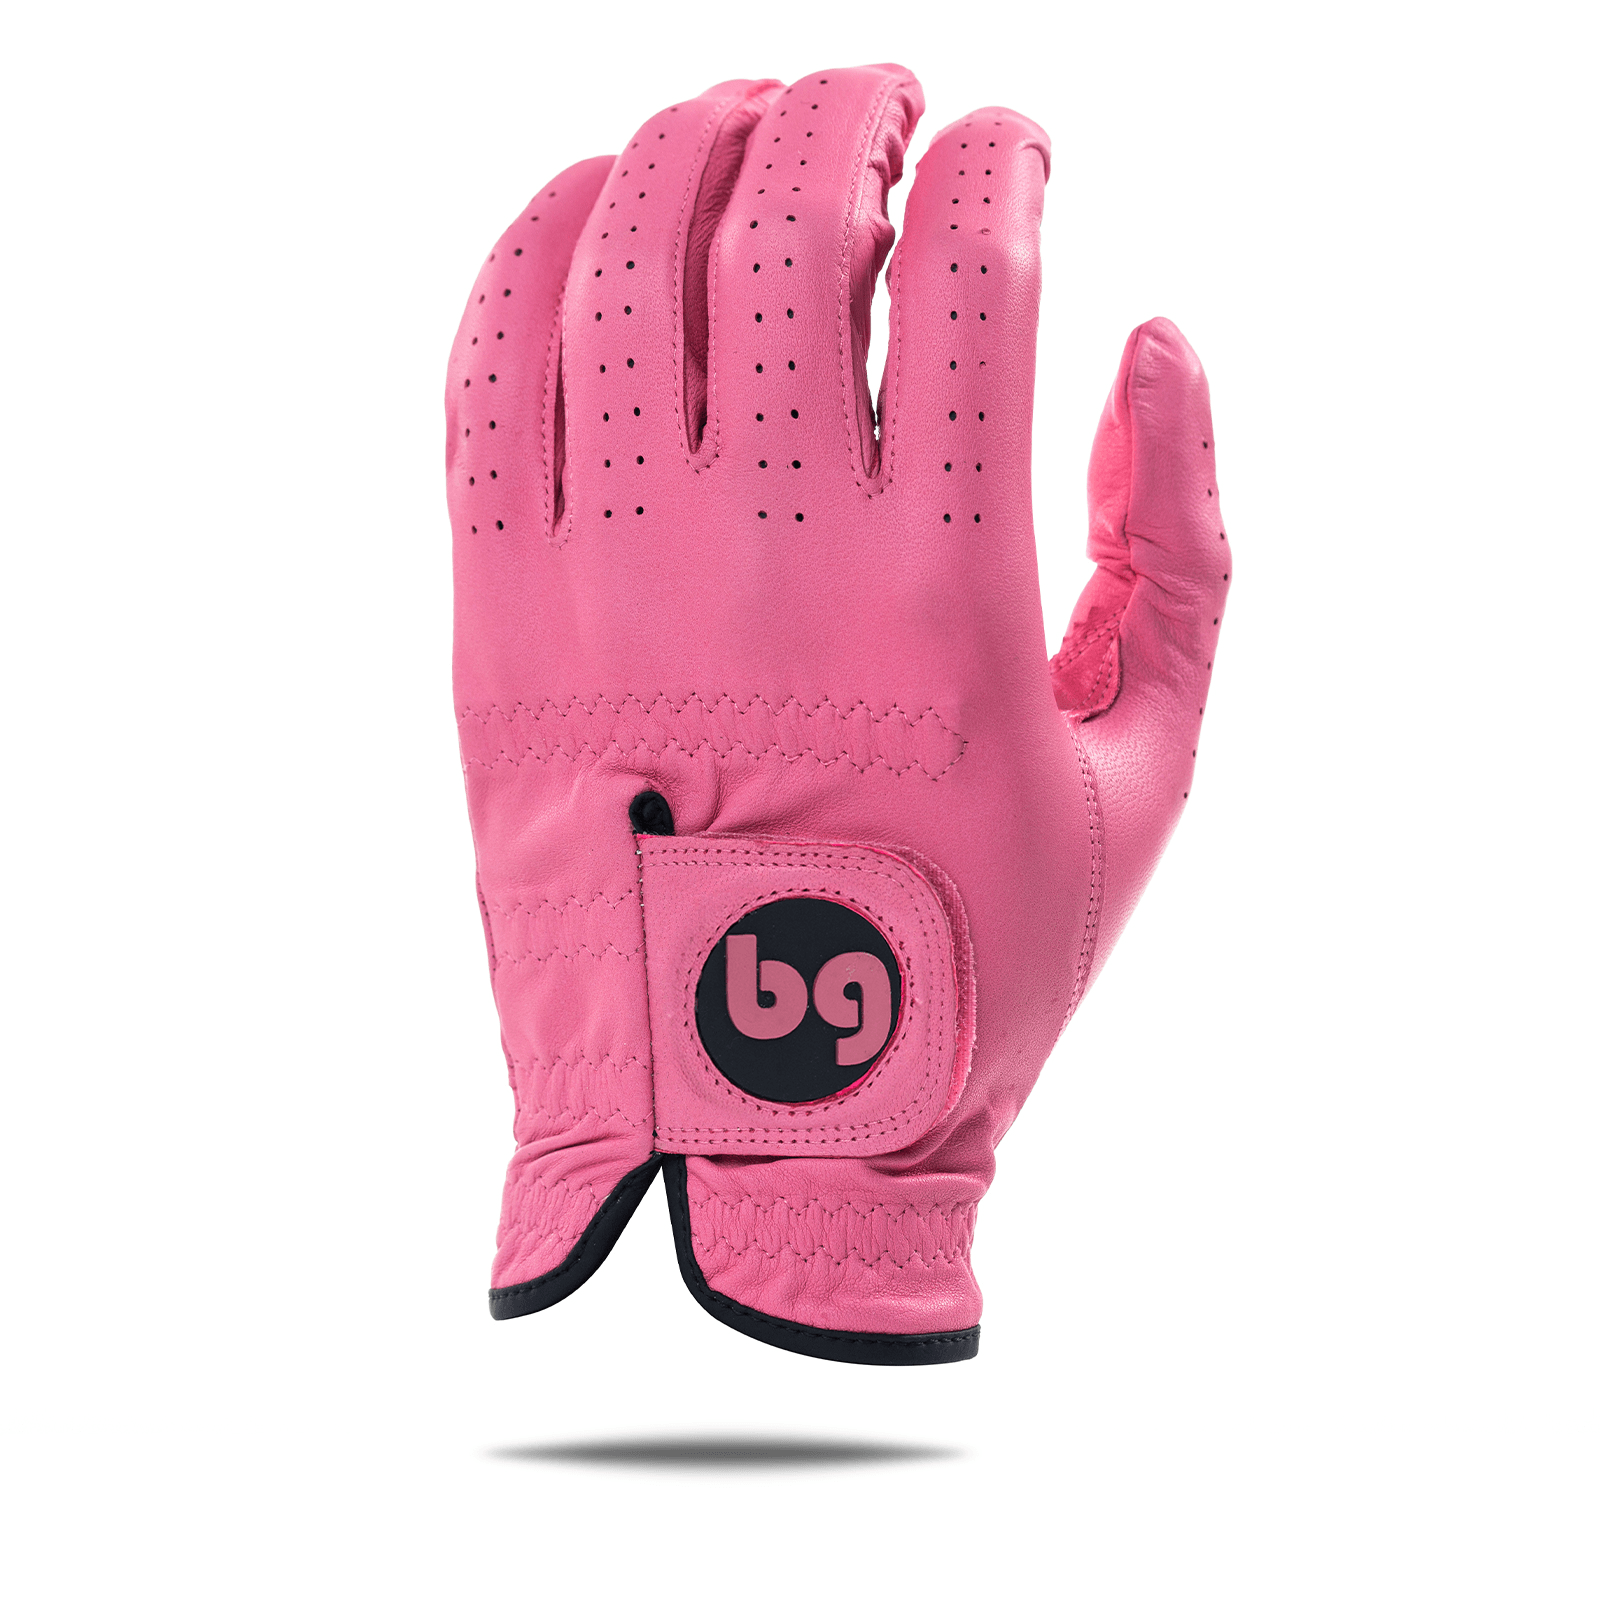 Pink Elite Tour Golf Glove